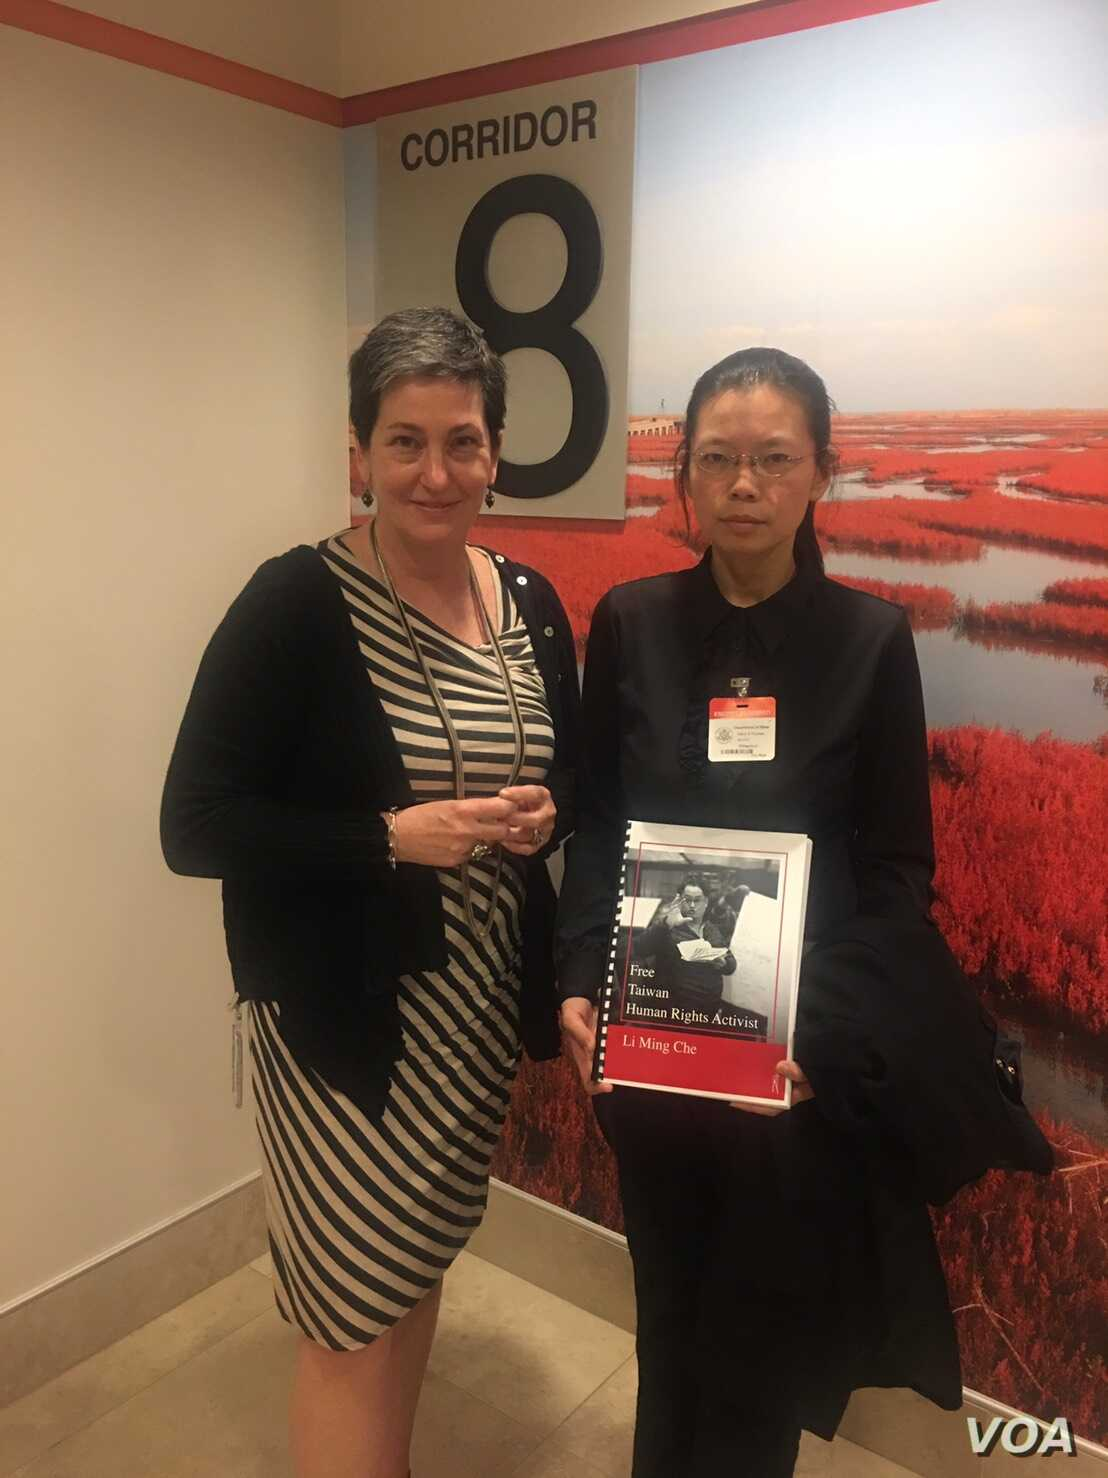 Virginia Bennett, the U.S. State Department's acting assistant secretary for democracy, human rights and labor affairs, greeted Ching-yu Lee at the dDepartment, May 17, 2017. (whereislee.org)